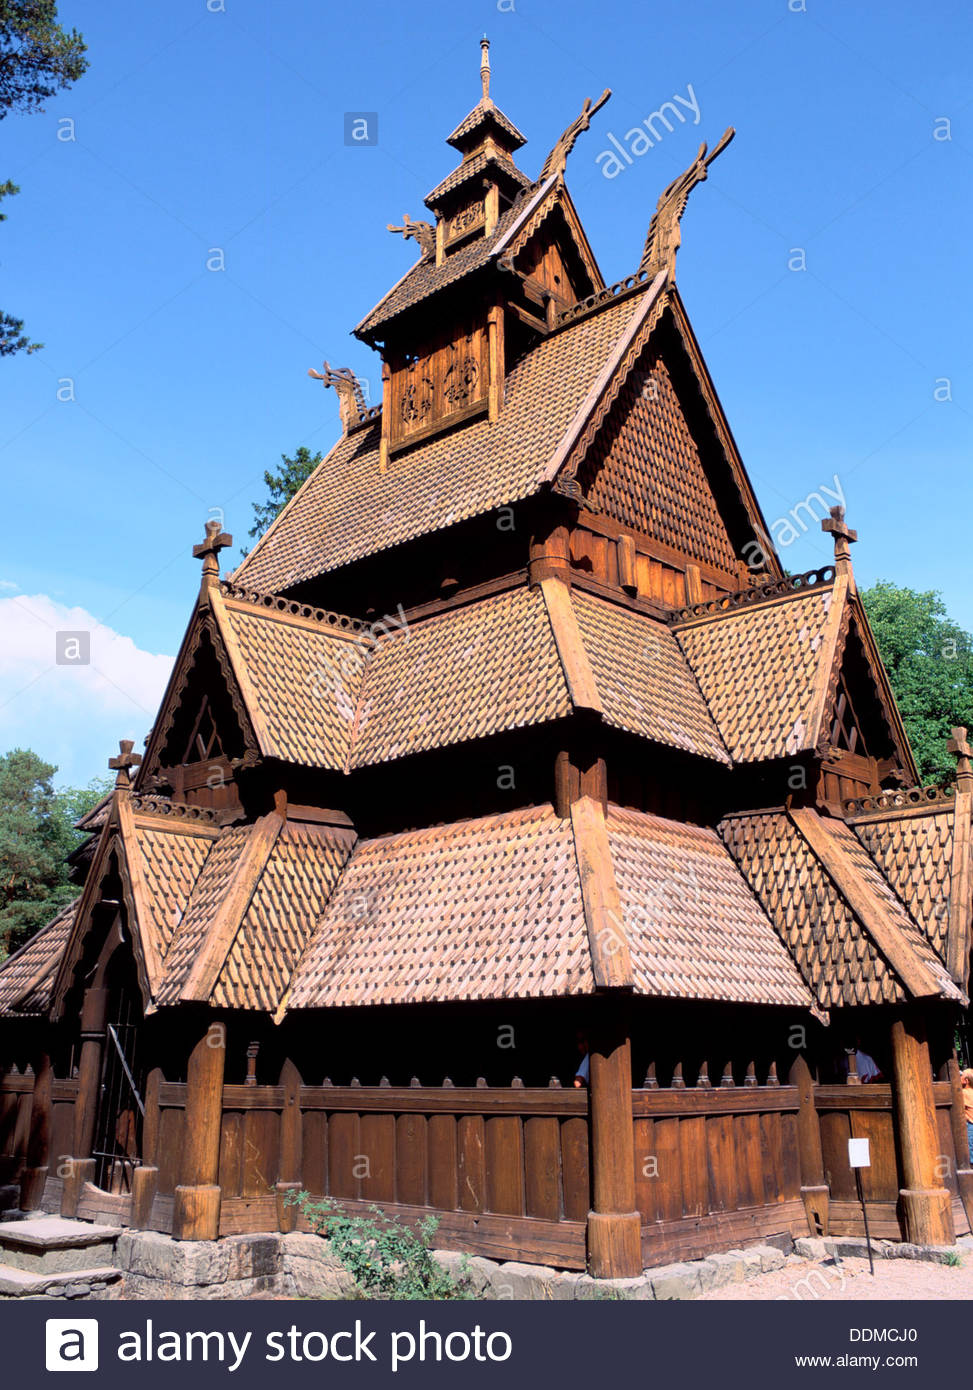 Gol Stave Church, folk museum, Oslo, Norway. Artist: Dr Stephen Coyne - Stock Image